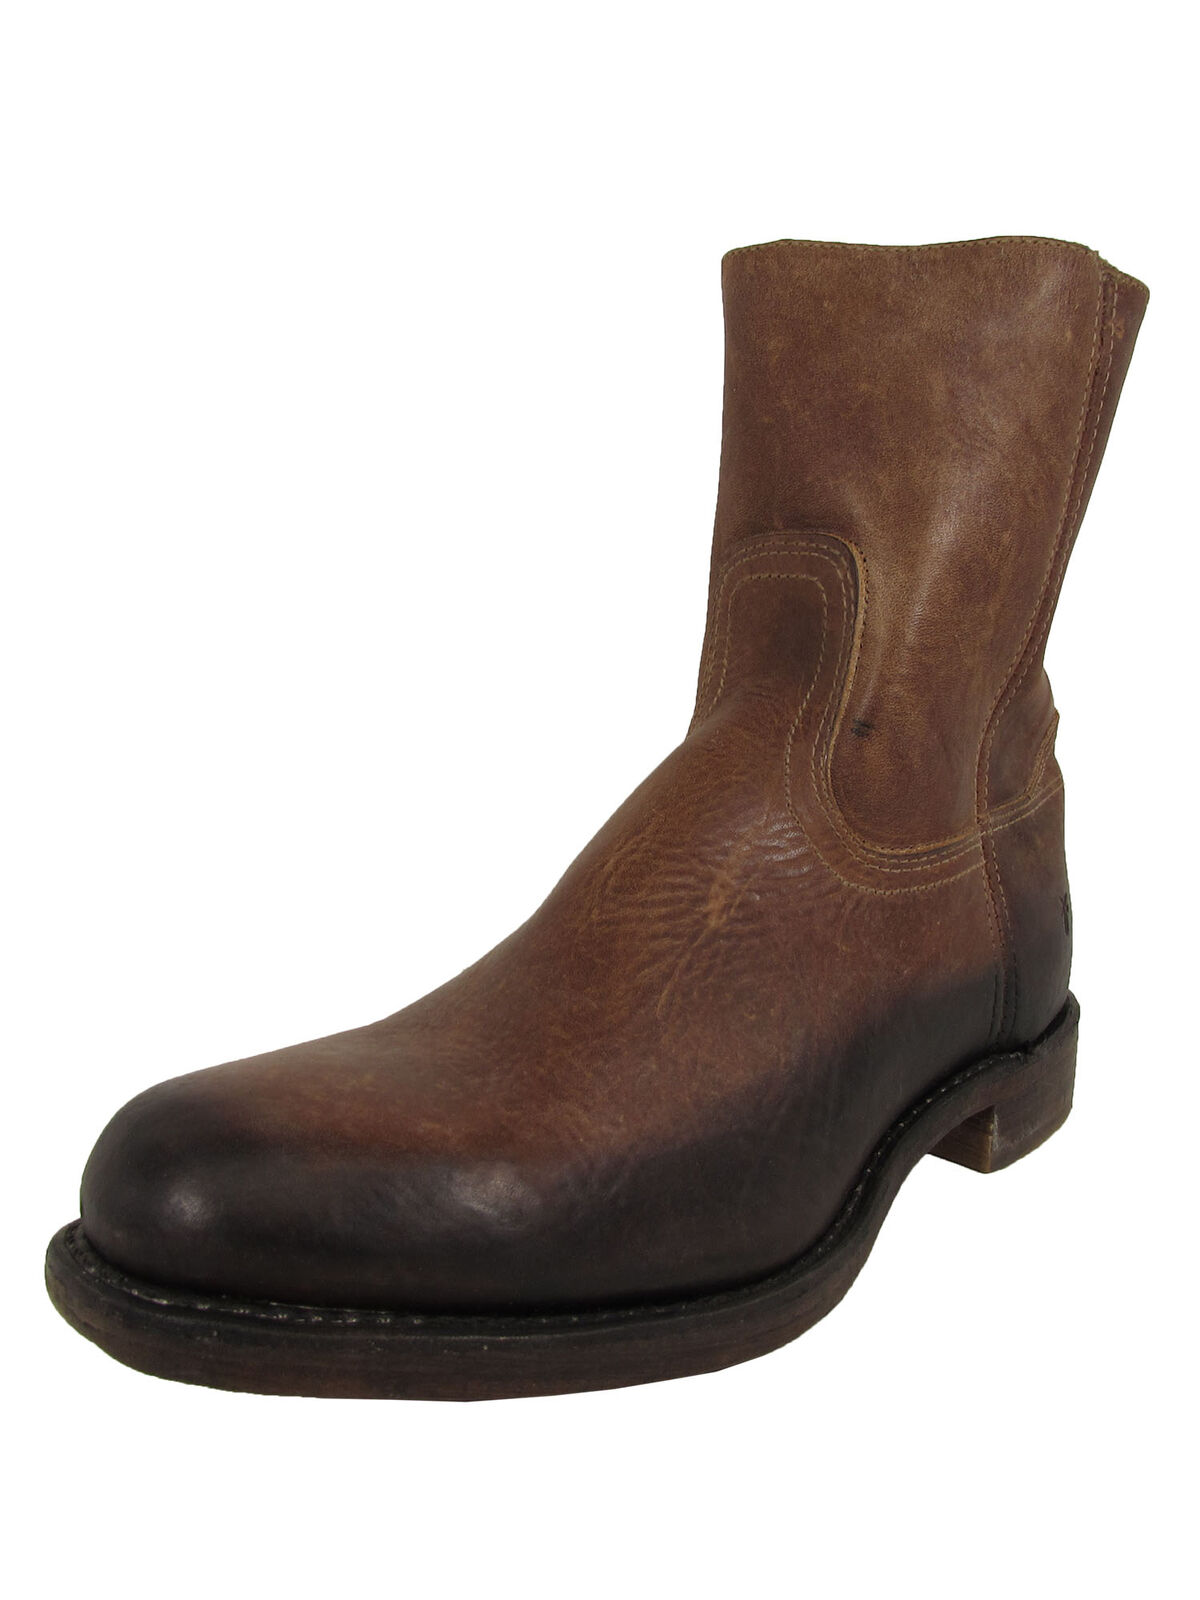 Frye Mens Campus Inside Zip Up Leather Round Toe Boots, Brown, US 10